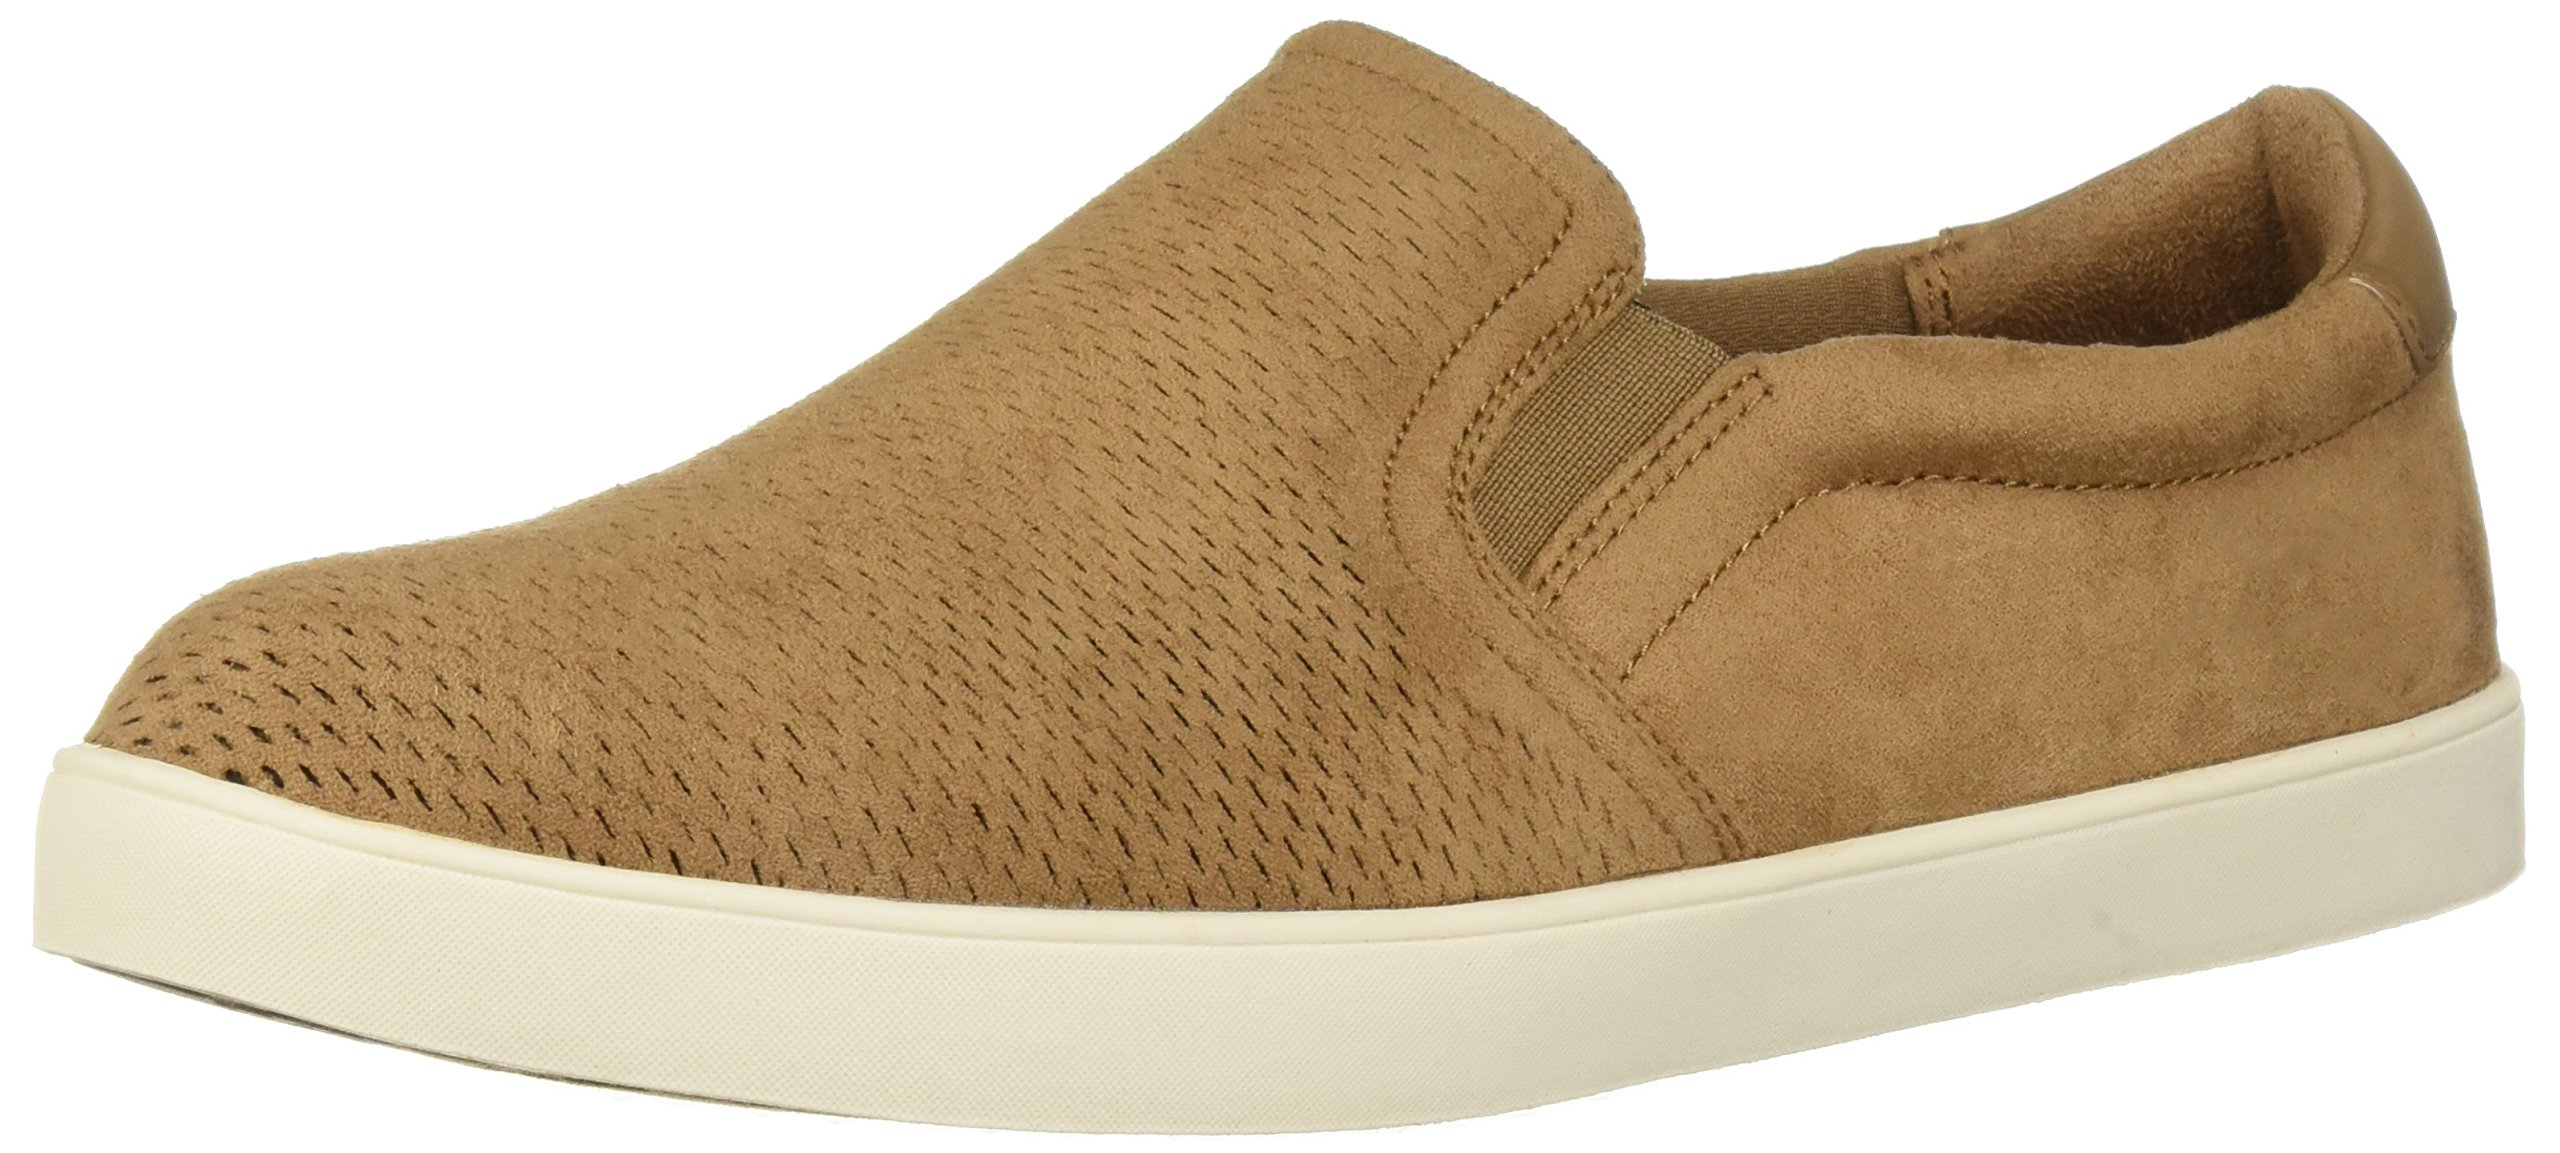 Dr. Scholl's Shoes Women's Madison Sneaker Toasted Coconut Cool Microfiber 7.5 M US